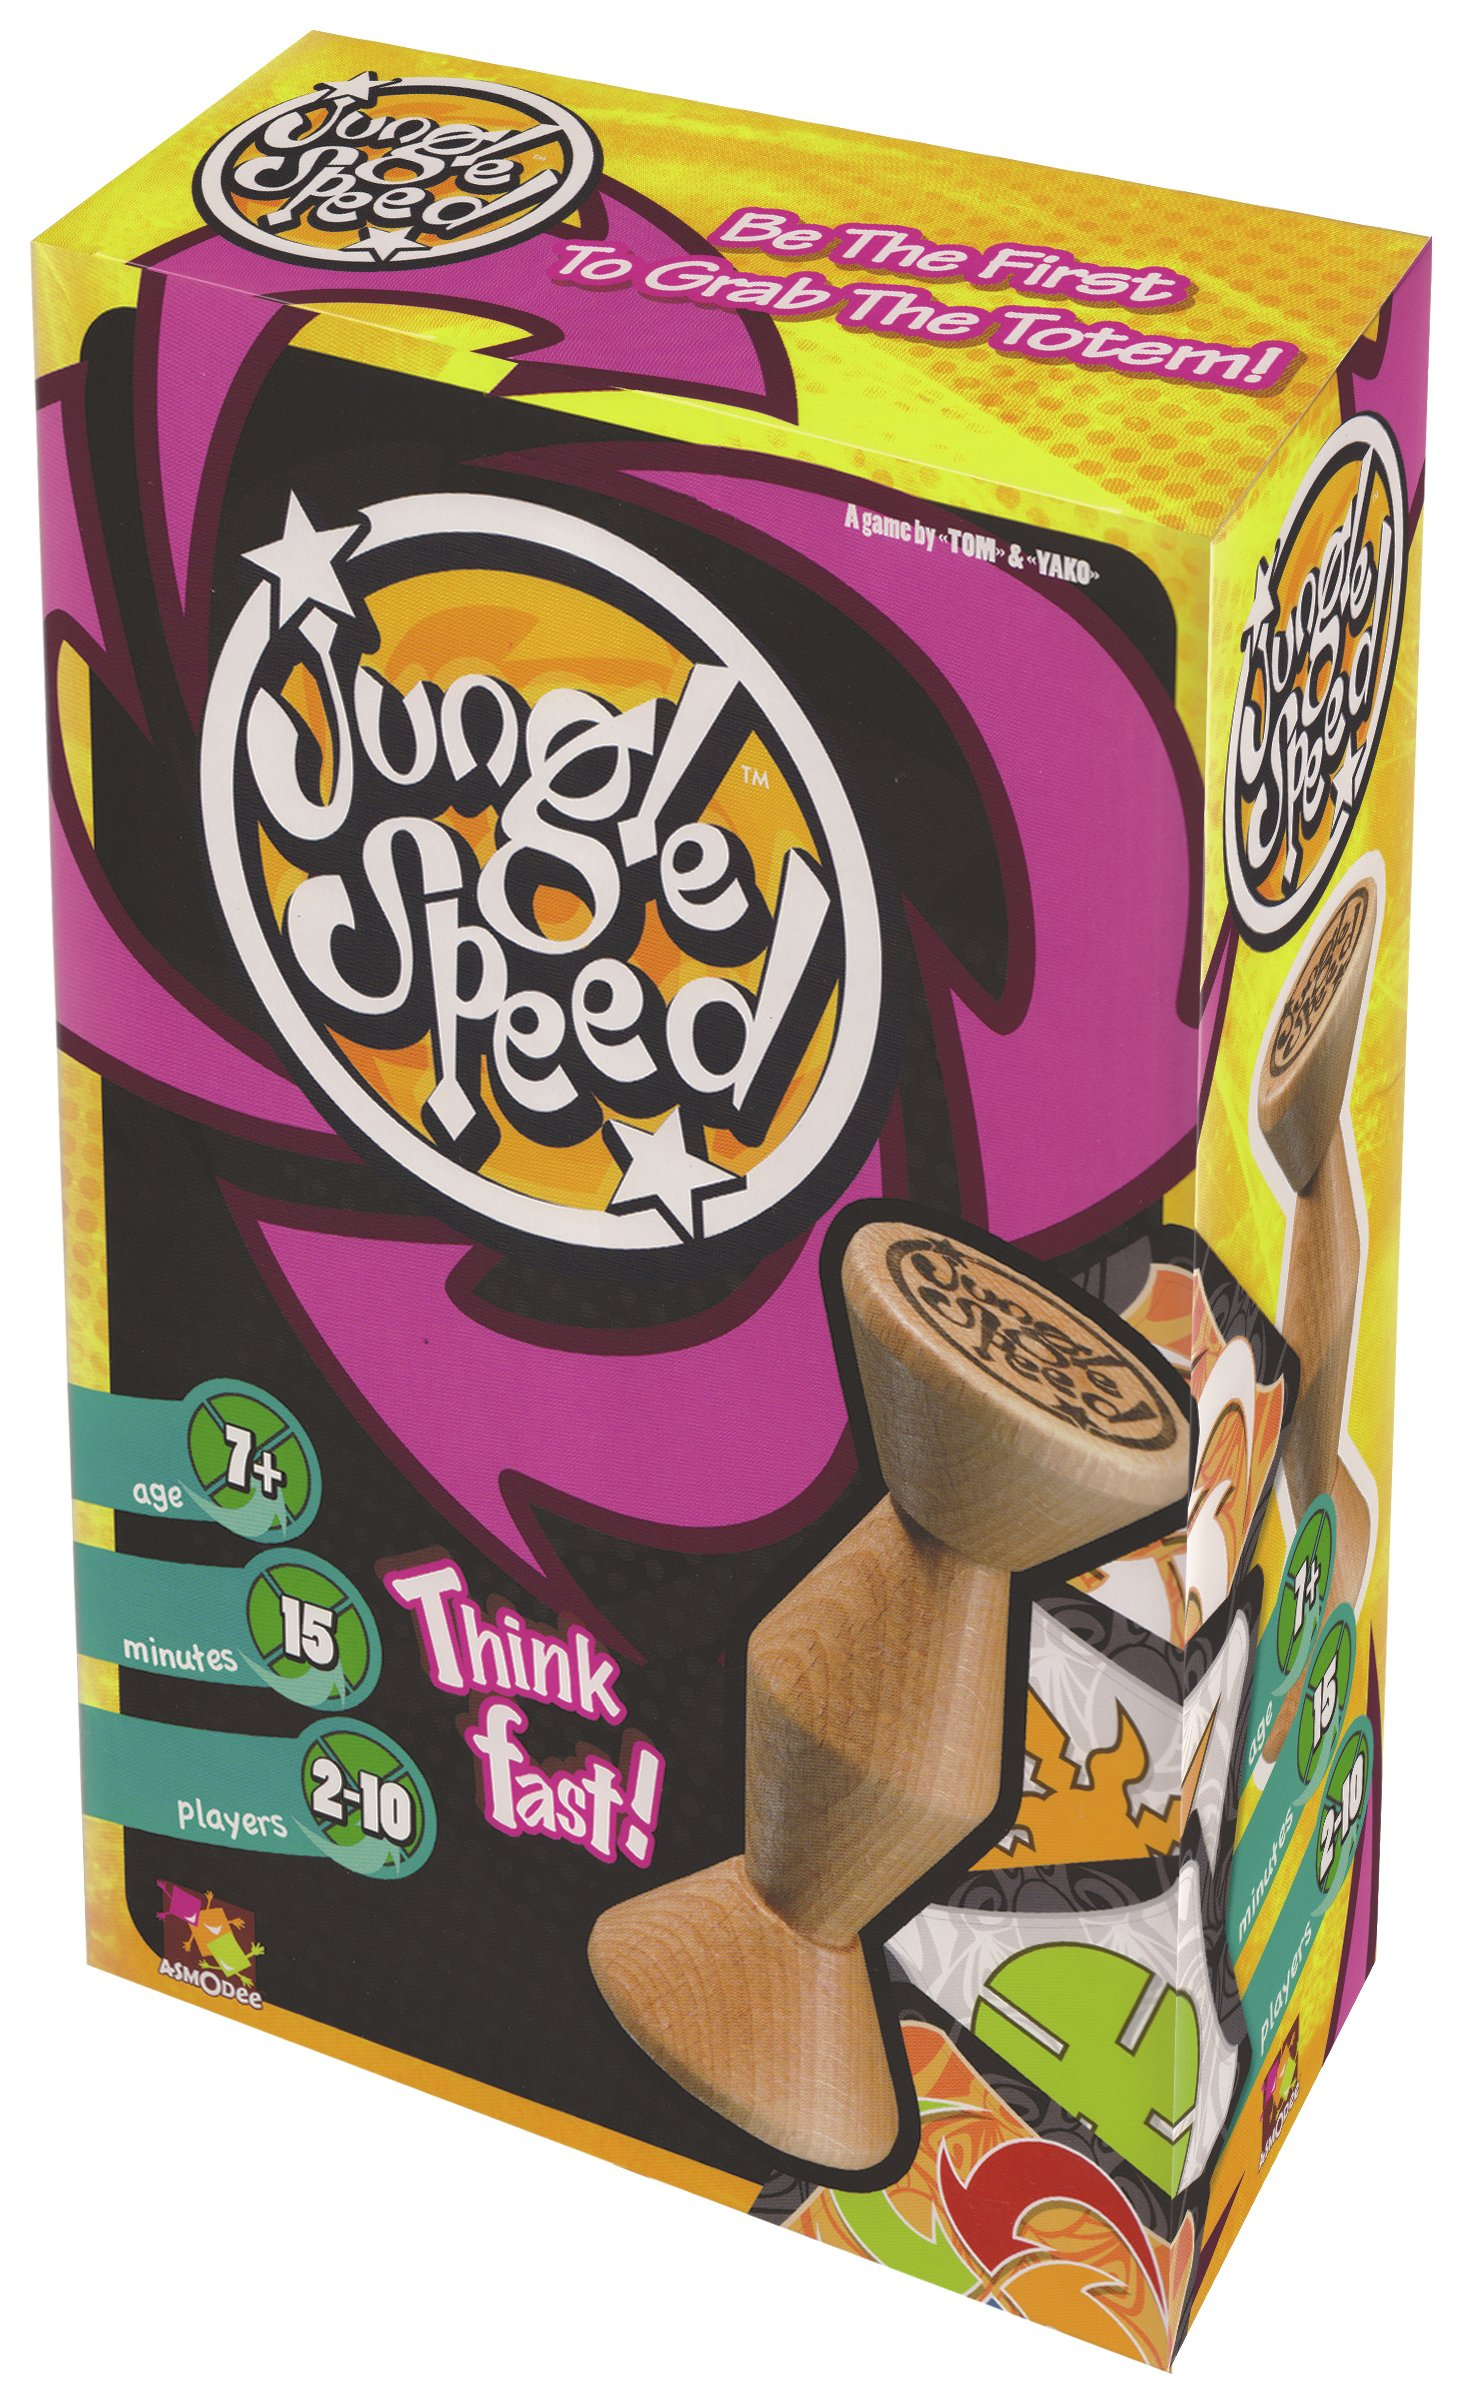 Image of Jungle Speed - Game.